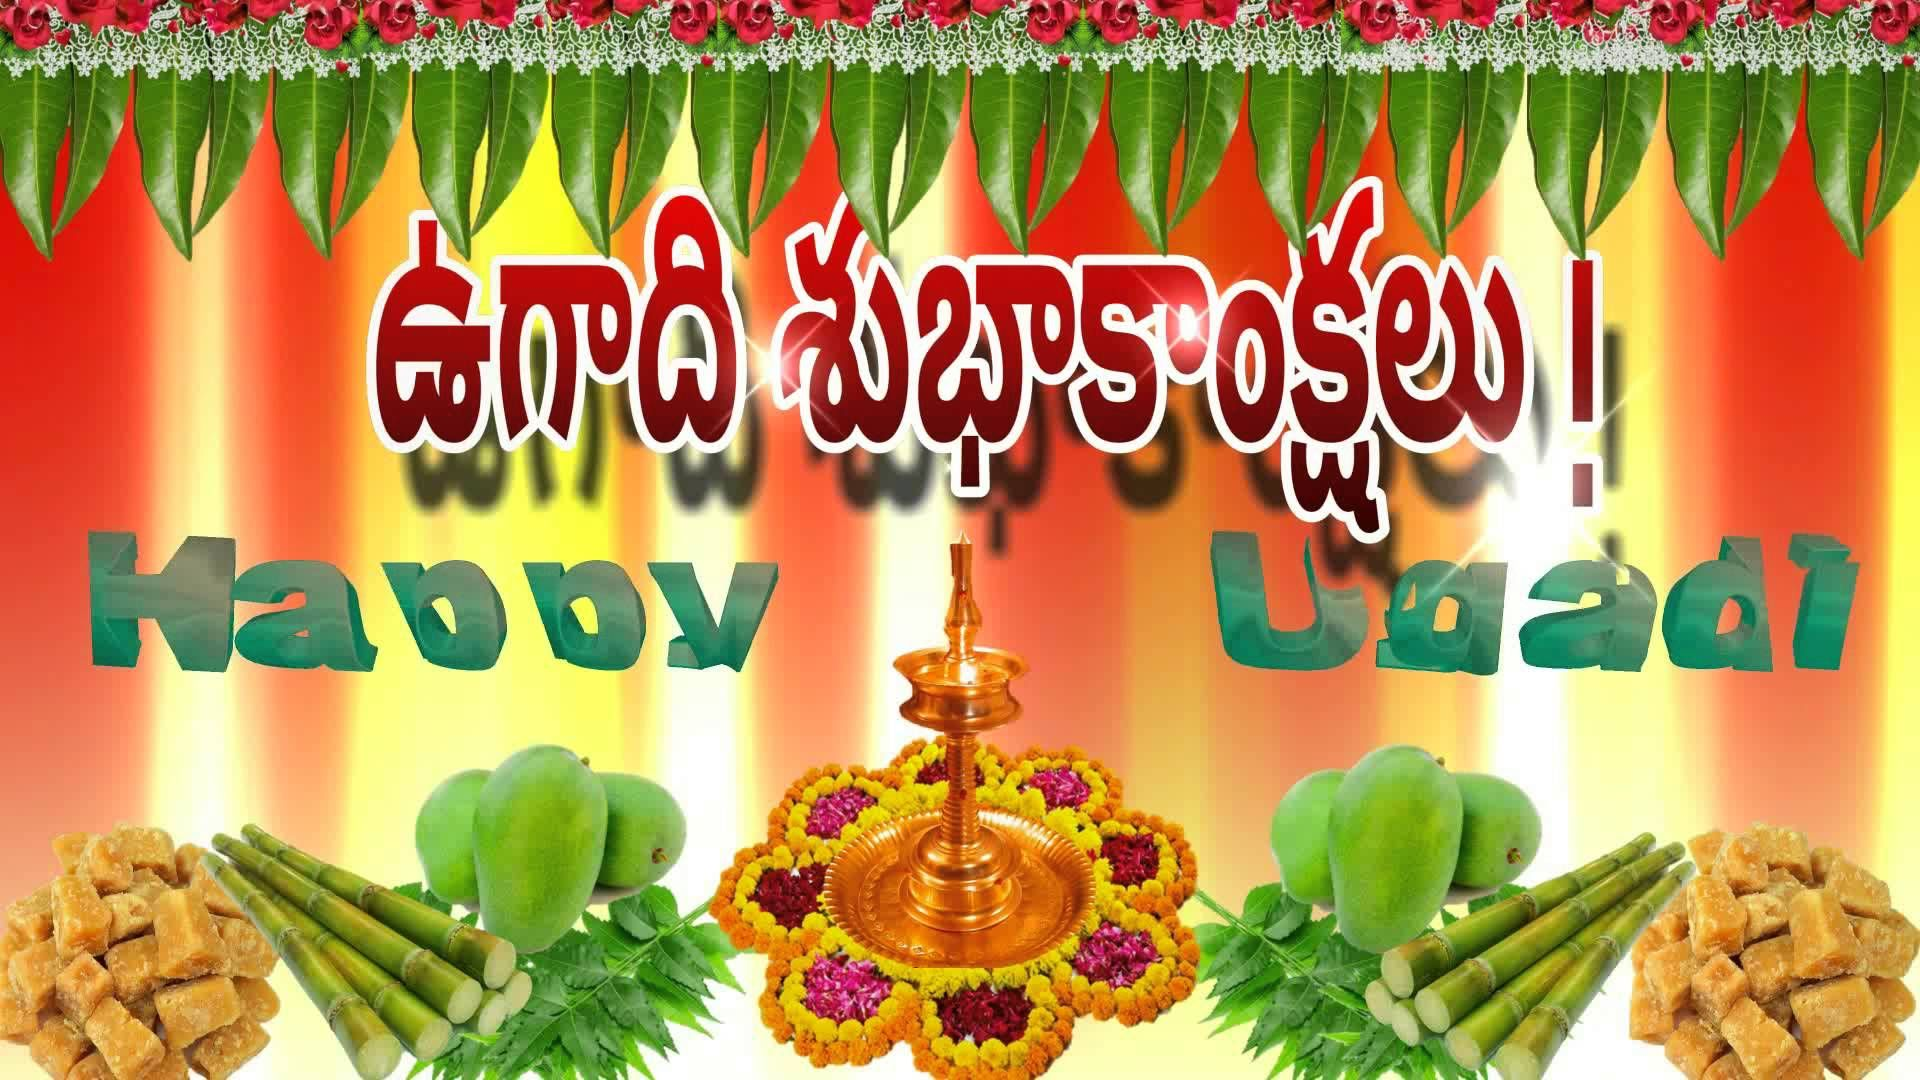 Happy ugadi wishes ugadi greetings ugadi 2016 ugadi animation happy ugadi wishes ugadi greetings ugadi 2016 ugadi animation videos m4hsunfo